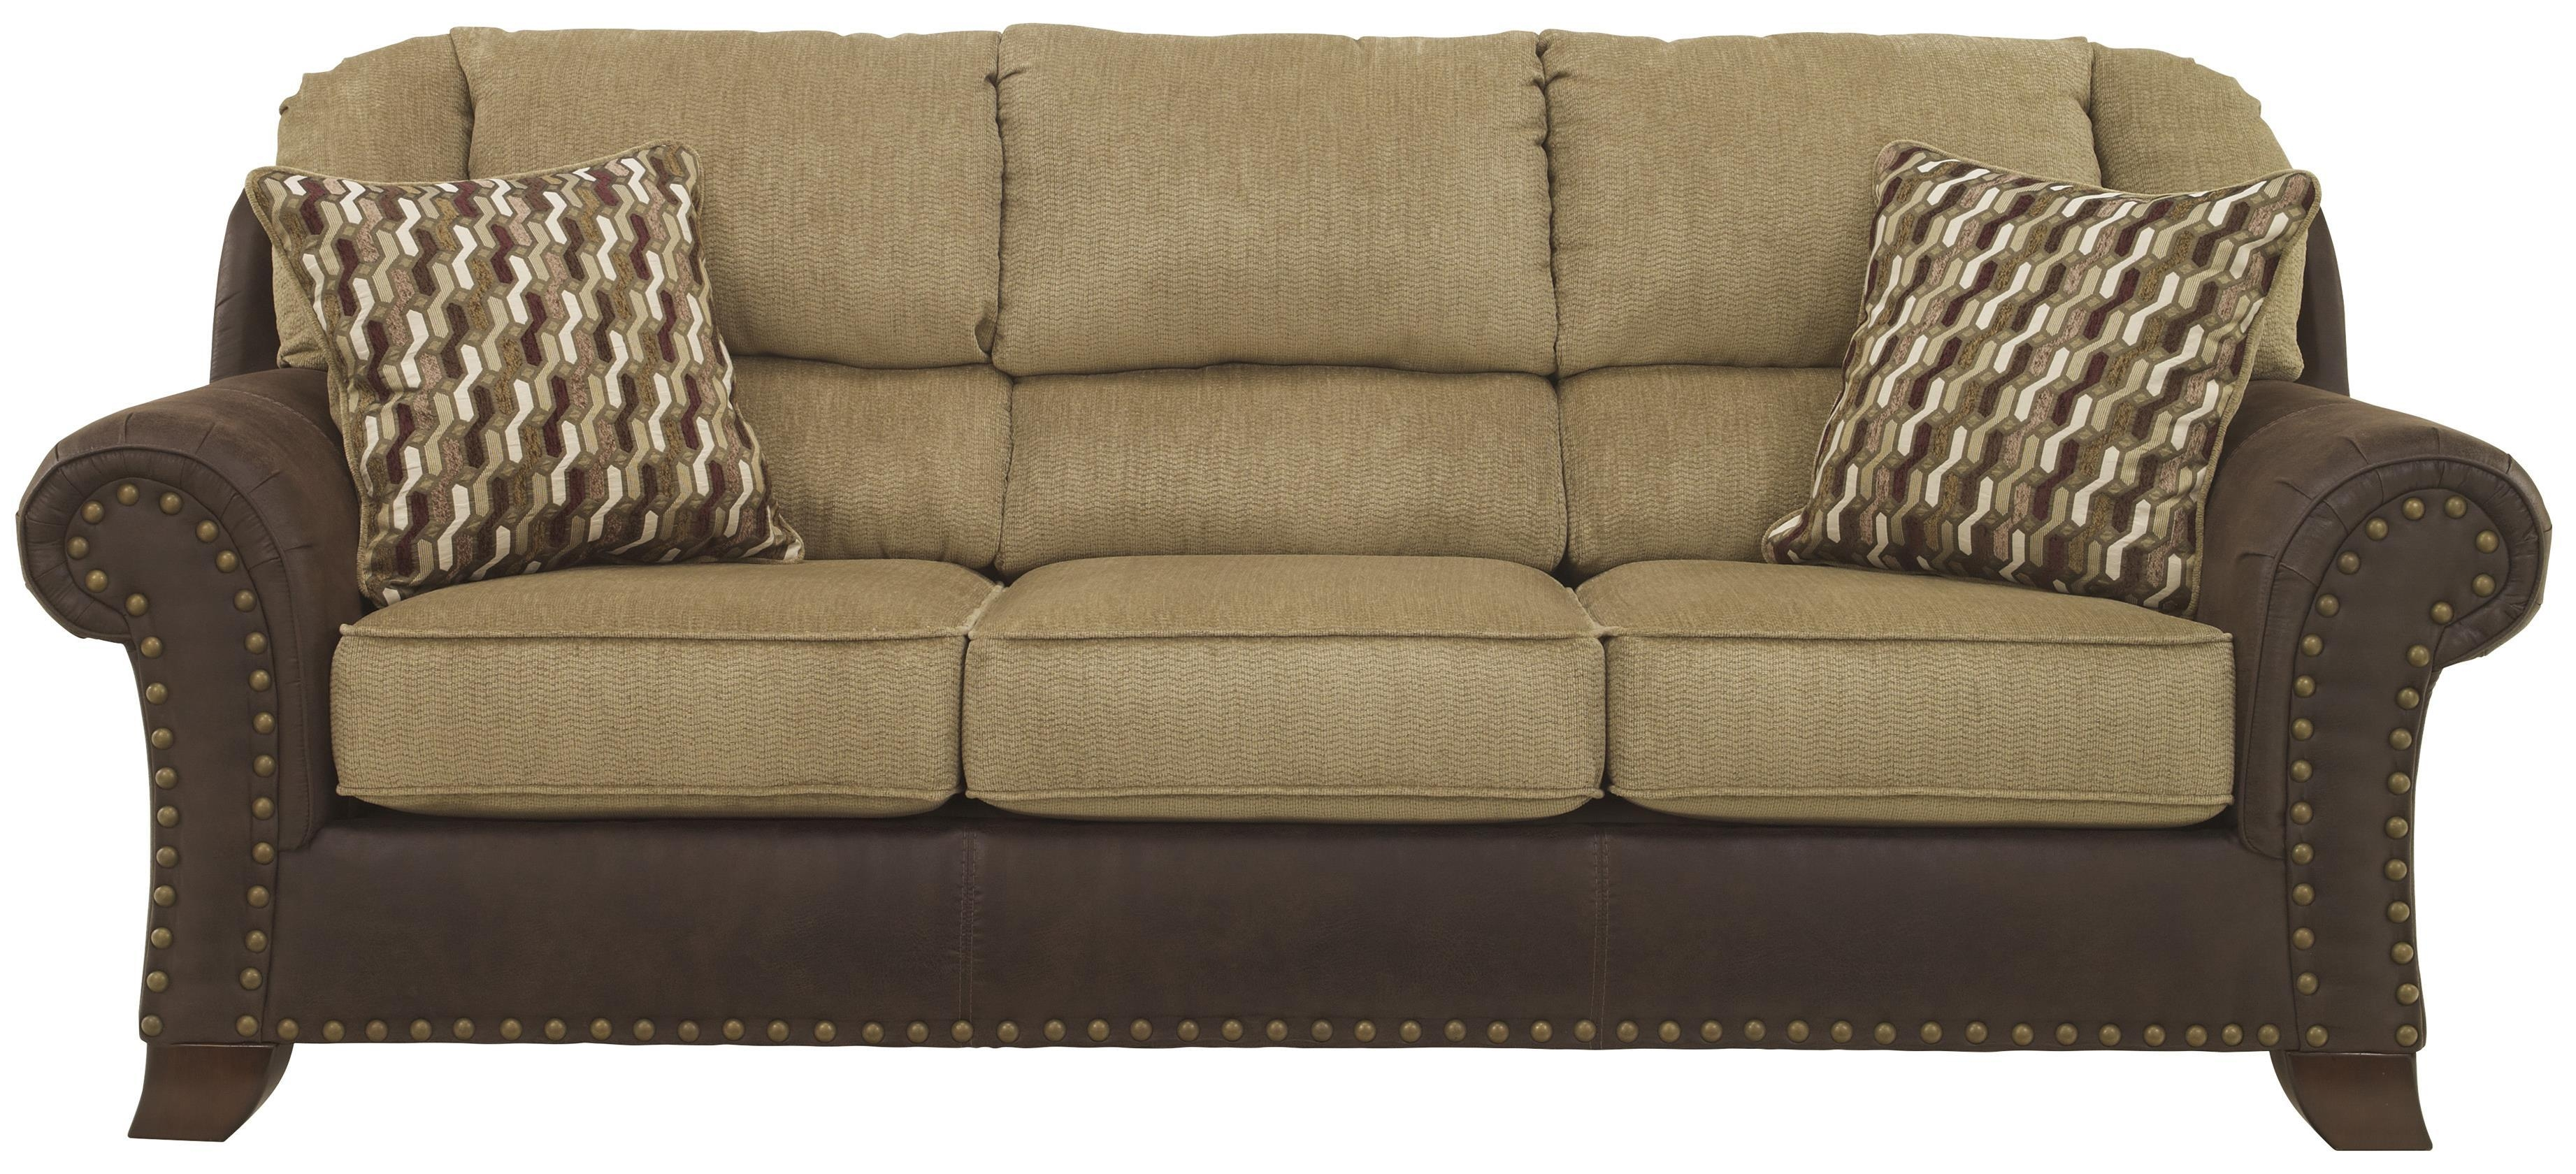 Two Tone Sofa With Chenille Fabric/faux Leather Upholstery In Benchcraft Leather Sofas (Image 20 of 20)